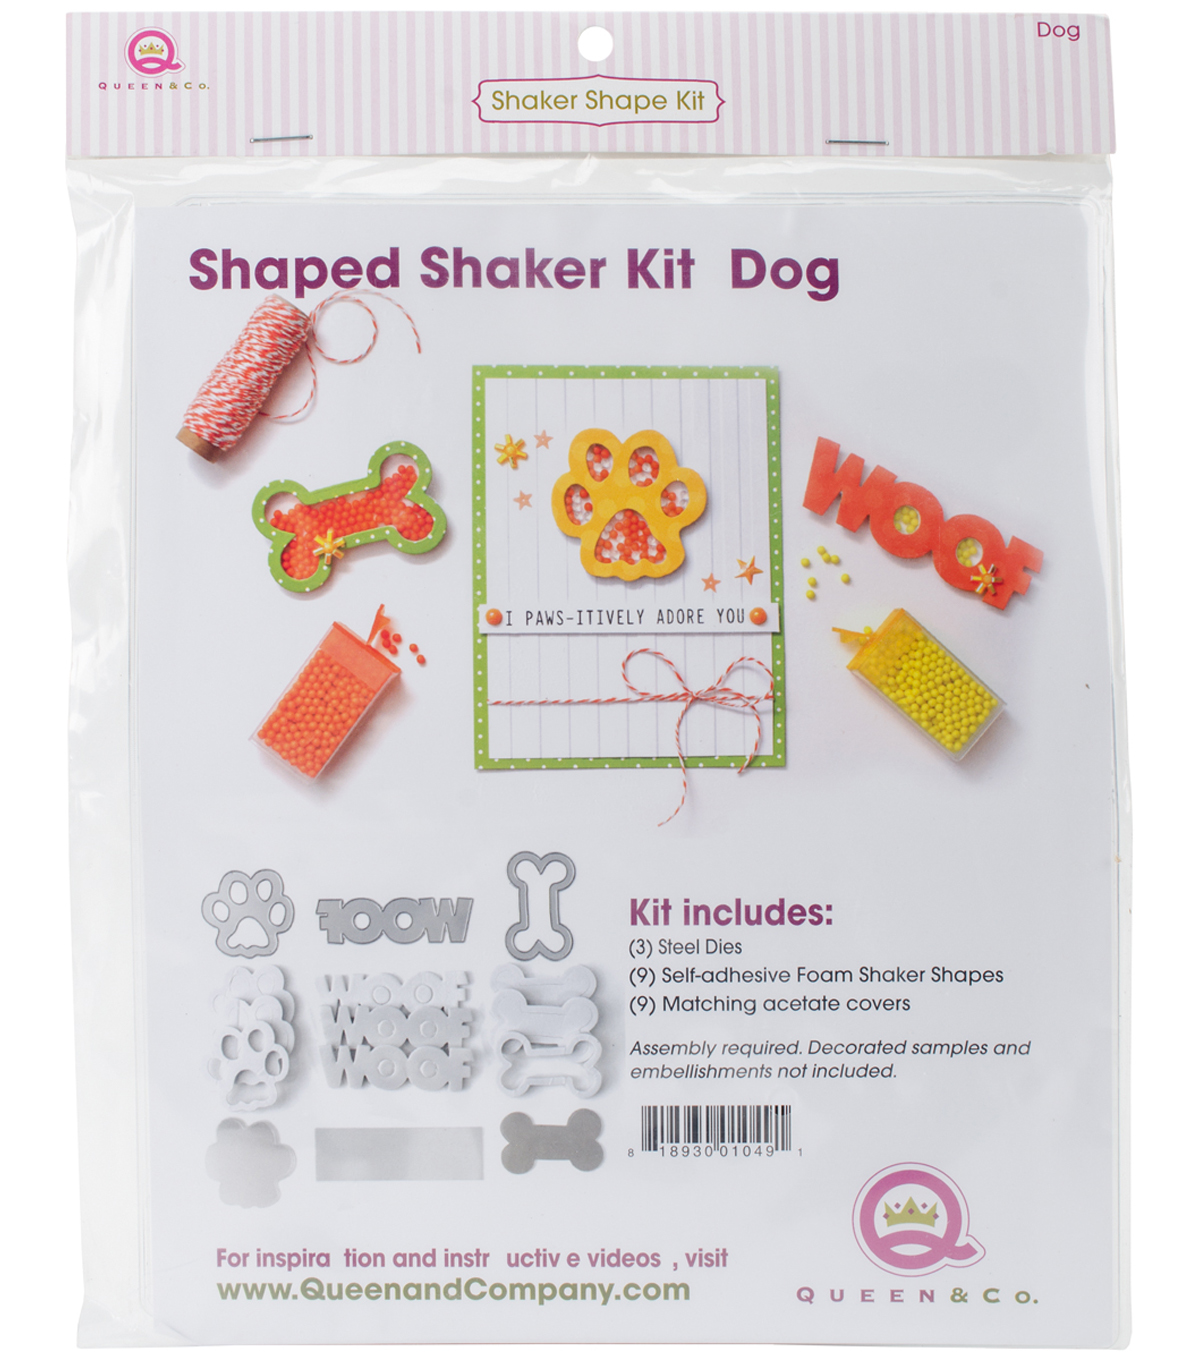 Queen & Company Shaker Shape Kit-Dog